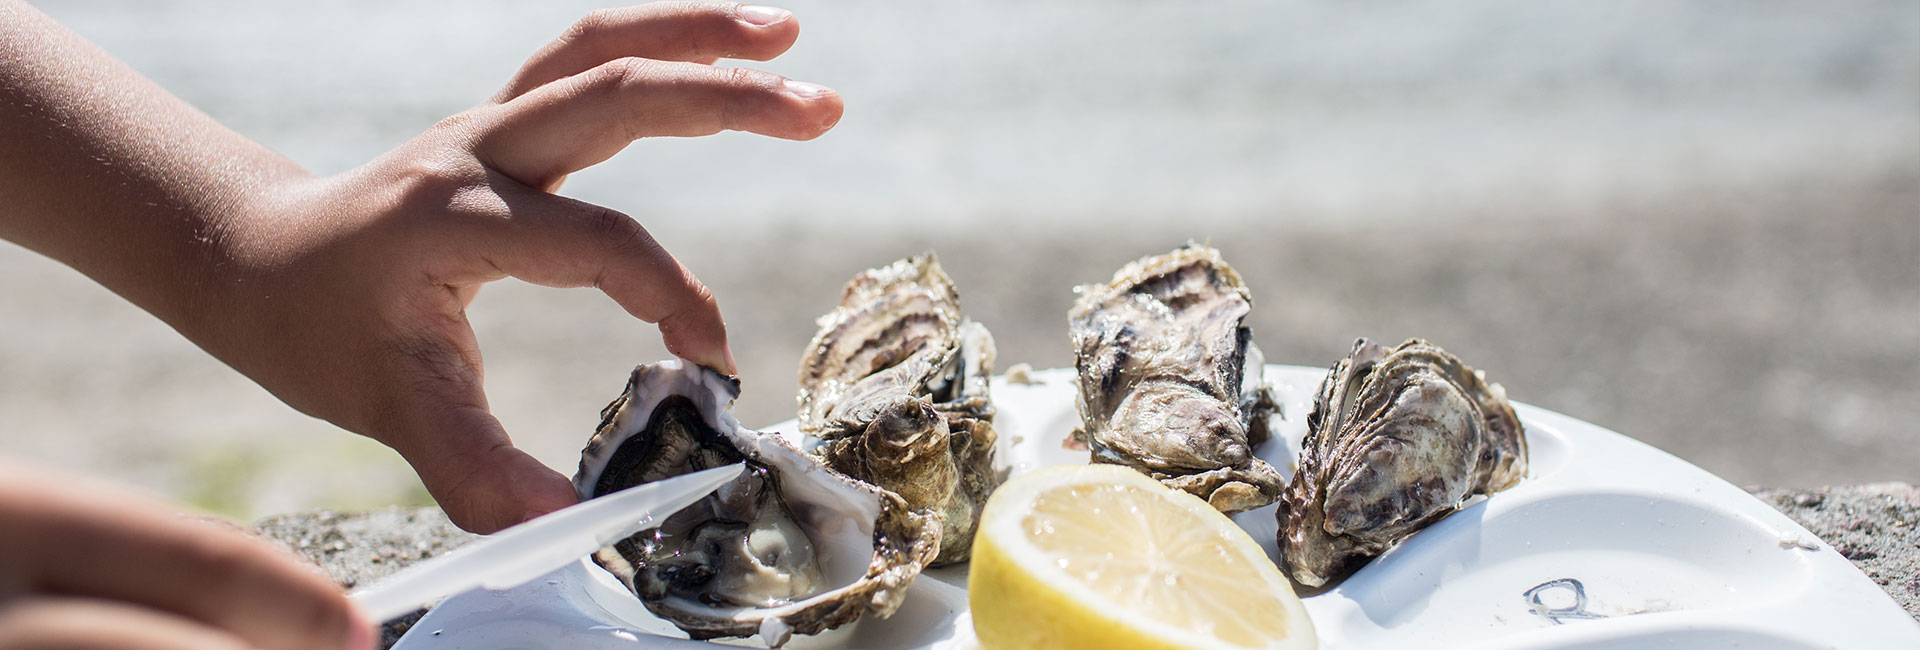 4_Feast on excellent oysters in Camden Harbour